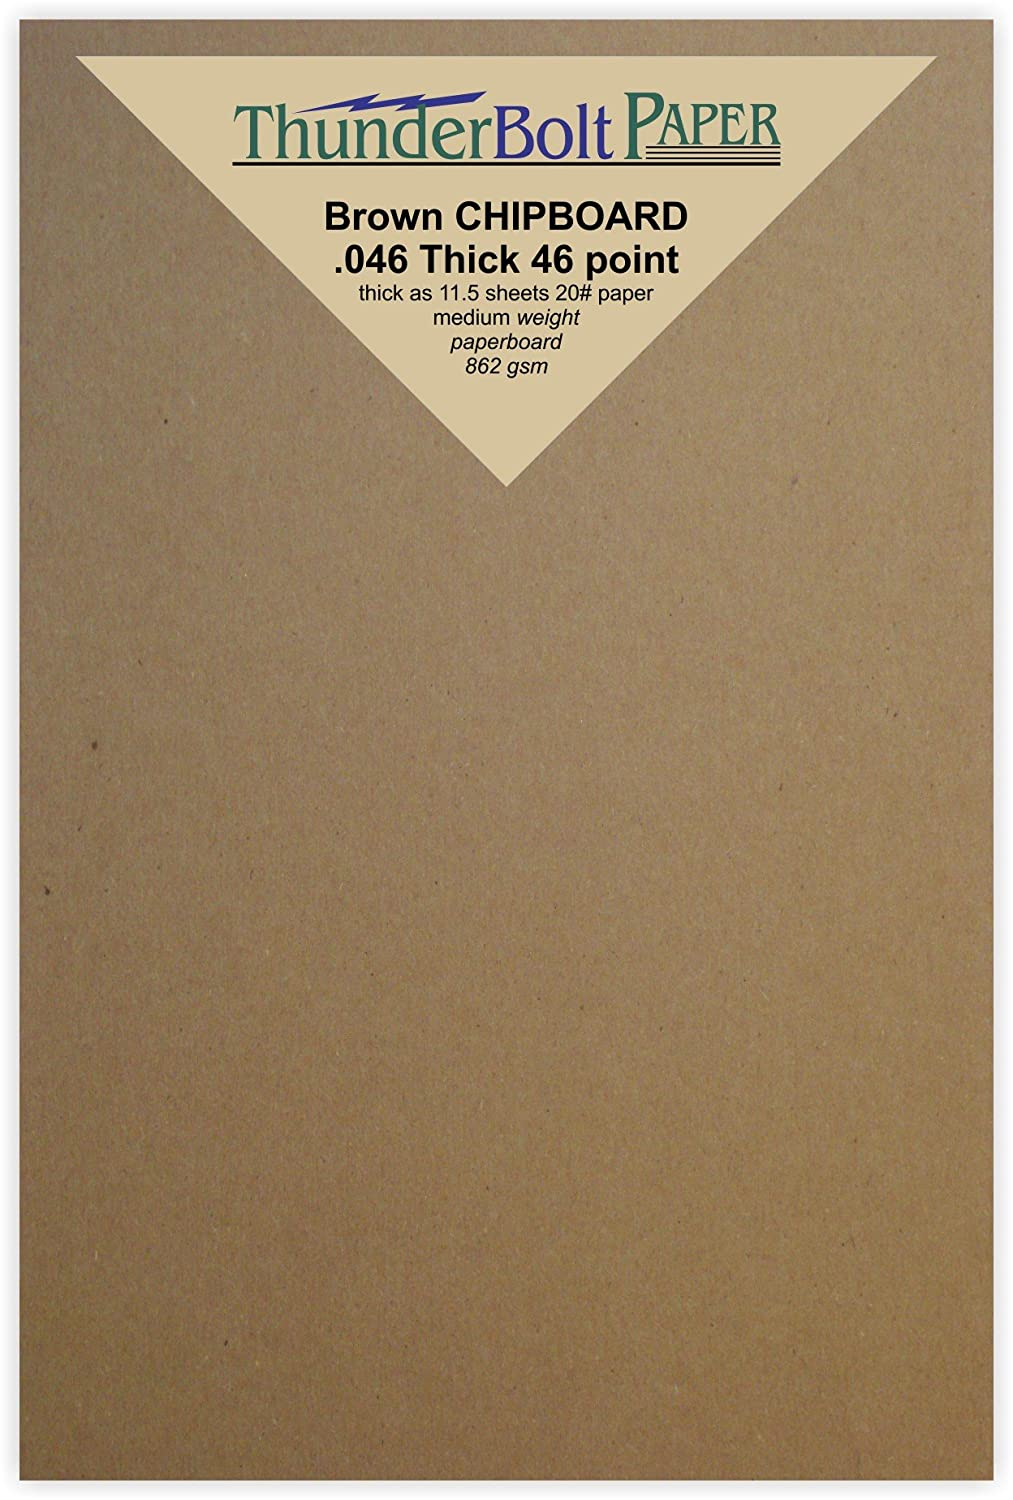 50 Sheets Chipboard 46pt (point) 4 X 6 Inches Heavy Weight Photo|Card Size .046 Caliper Thick Cardboard Craft and Packing Brown Kraft Paper Board TBP 4336978454